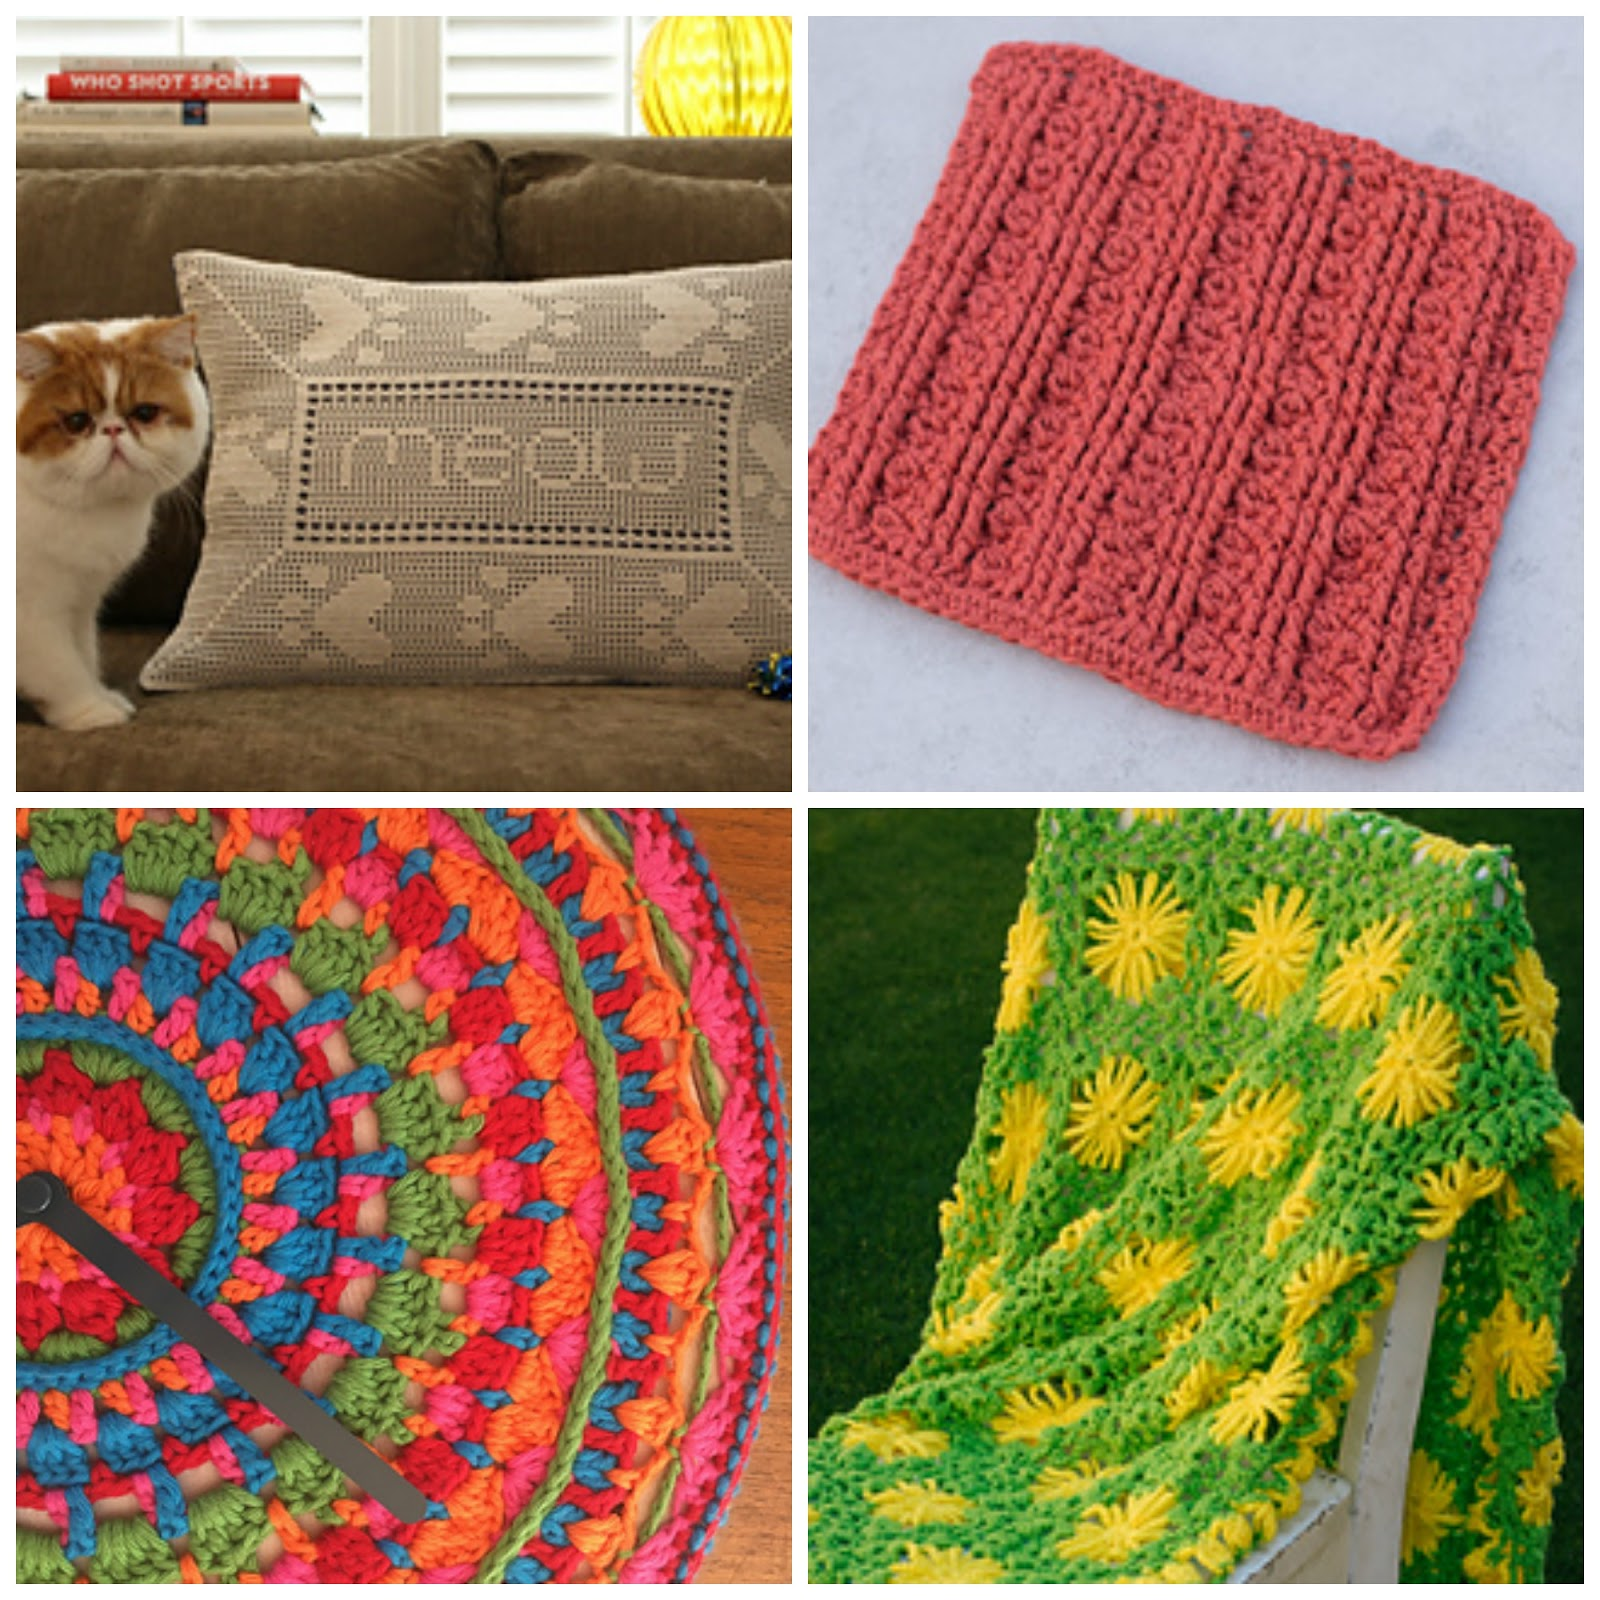 Eyeloveknots chicken coasters happily hooked magazine issue 36 red heart pattern roundup a few of my favorites include the paw print pillow top left which includes meow and woof the cottonwood dishcloth top bankloansurffo Choice Image